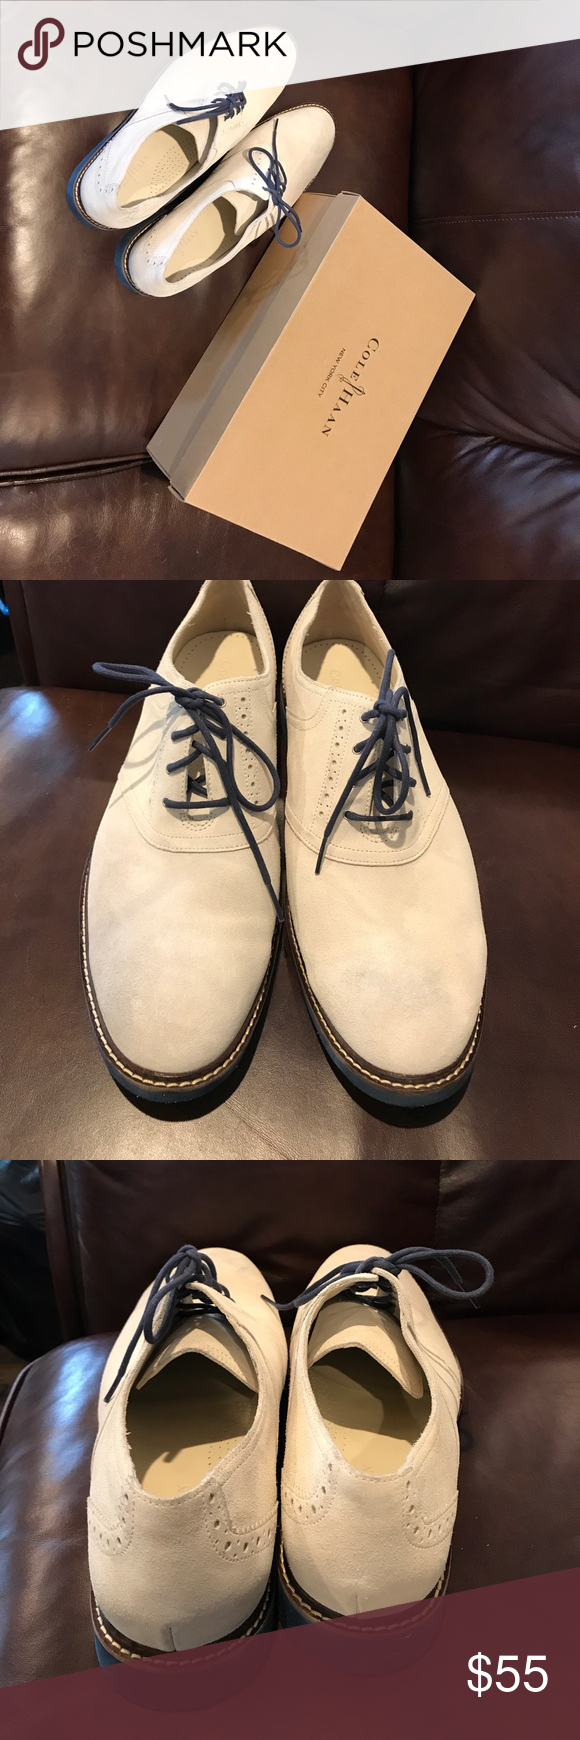 6e8dfdb0414 Cole Haan NYC White Suede Shoes Size 13. Air franklin saddle shoes. Slight  scuff marks from use. Blue laces. Nice used condition. Comes with original  box.